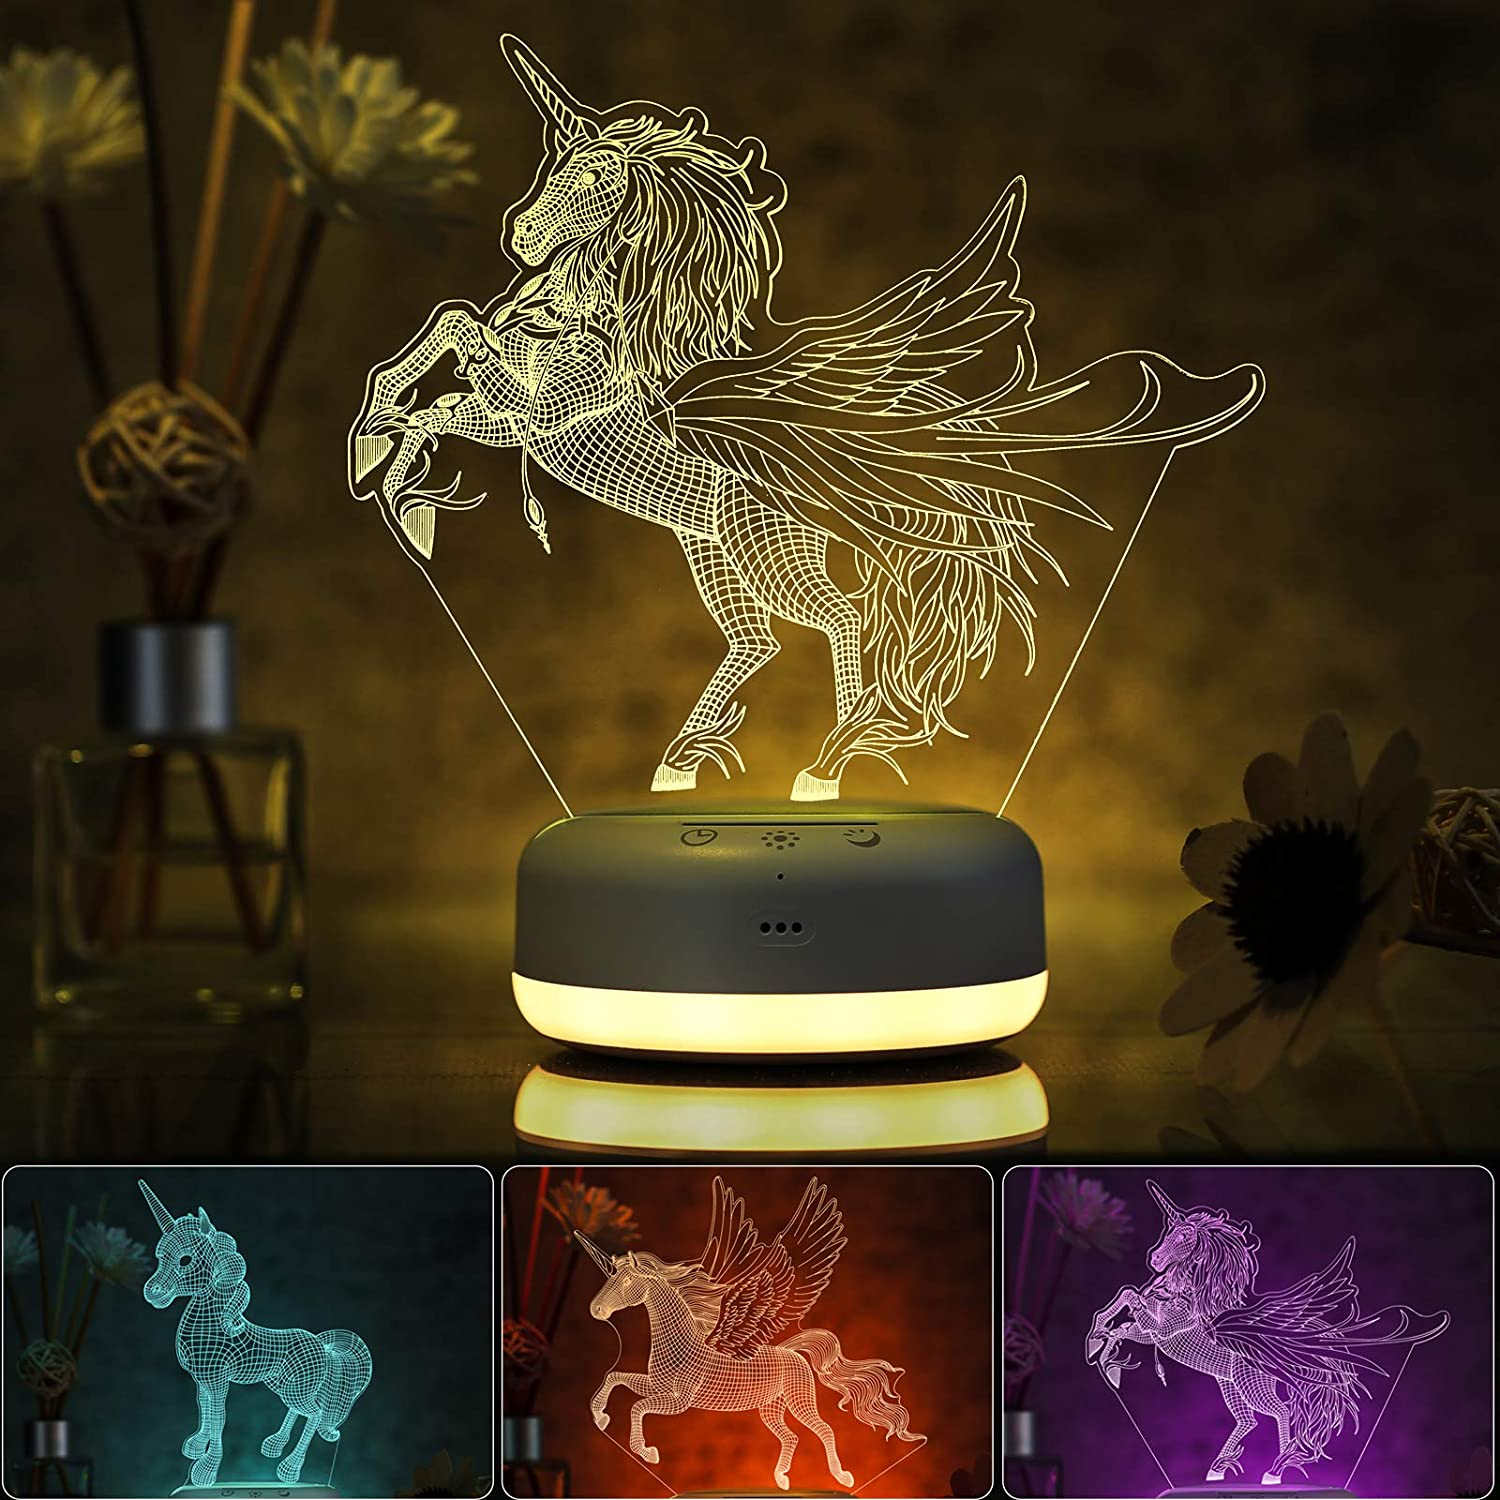 3D Unicorn Night Light for Kids, 3 Patterns and 16 Color Change Night Light, Kids' Room Decor Lamps, Unicorn Toys and Unicorn Gifts for Girls, Boys